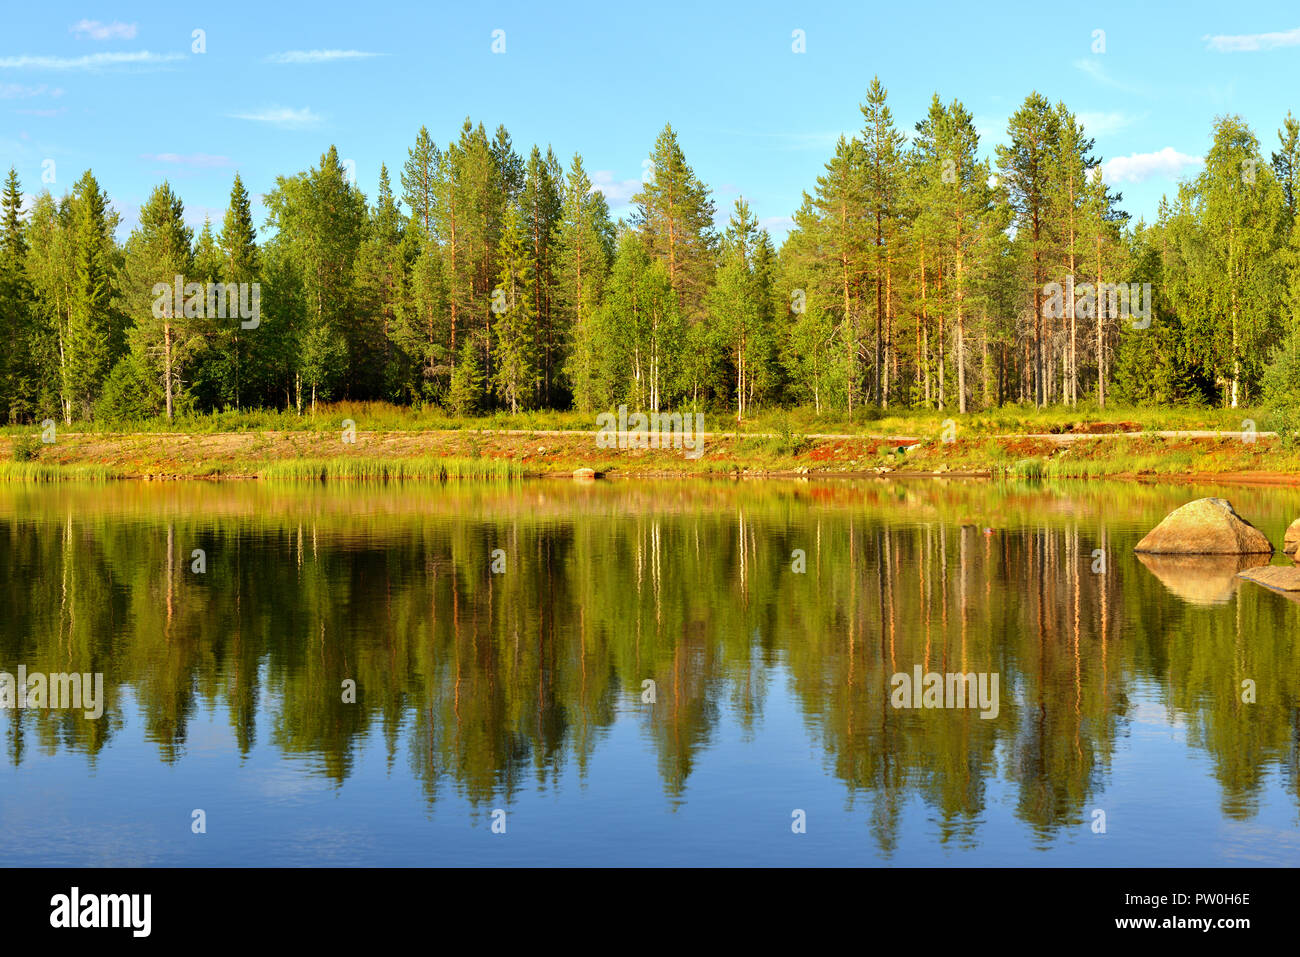 Summer landscape in Finnish Lapland.  Reflection in forest lake - Stock Image